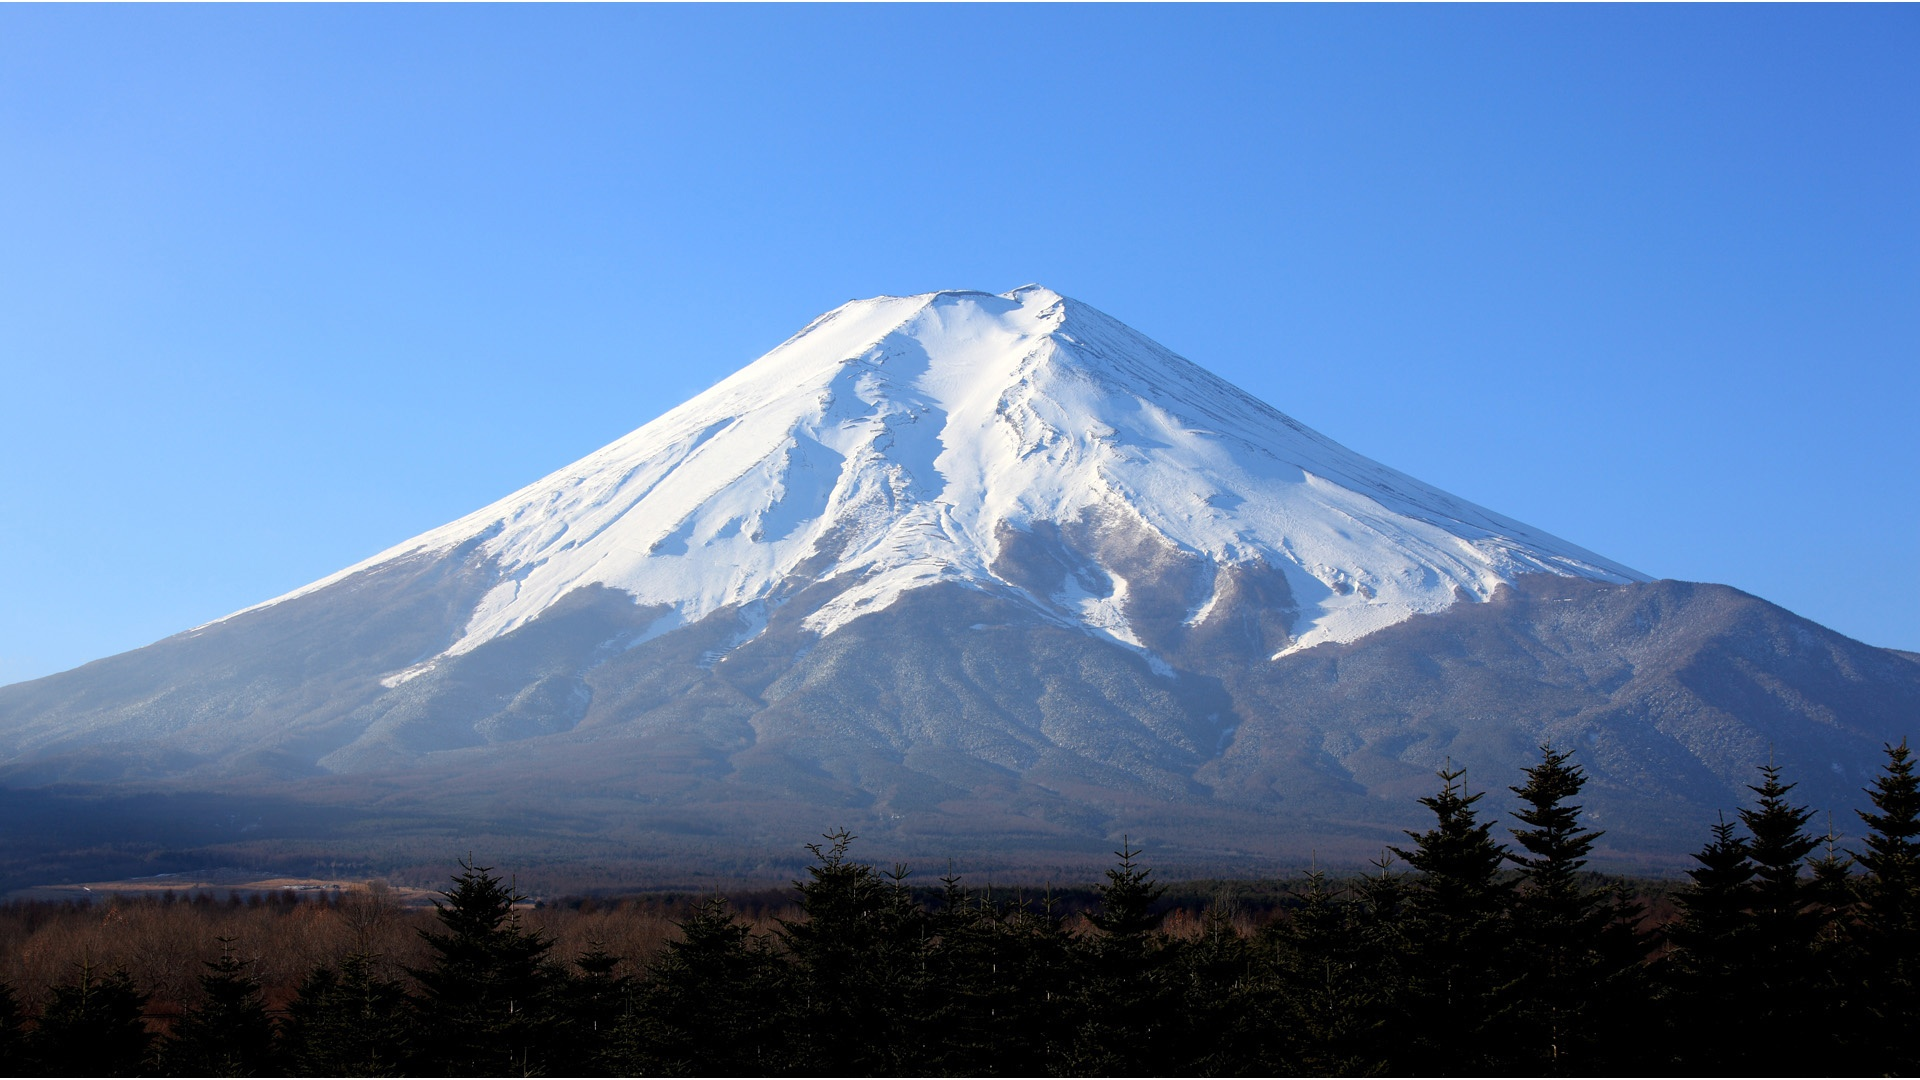 Mount Fuji download wallpaper